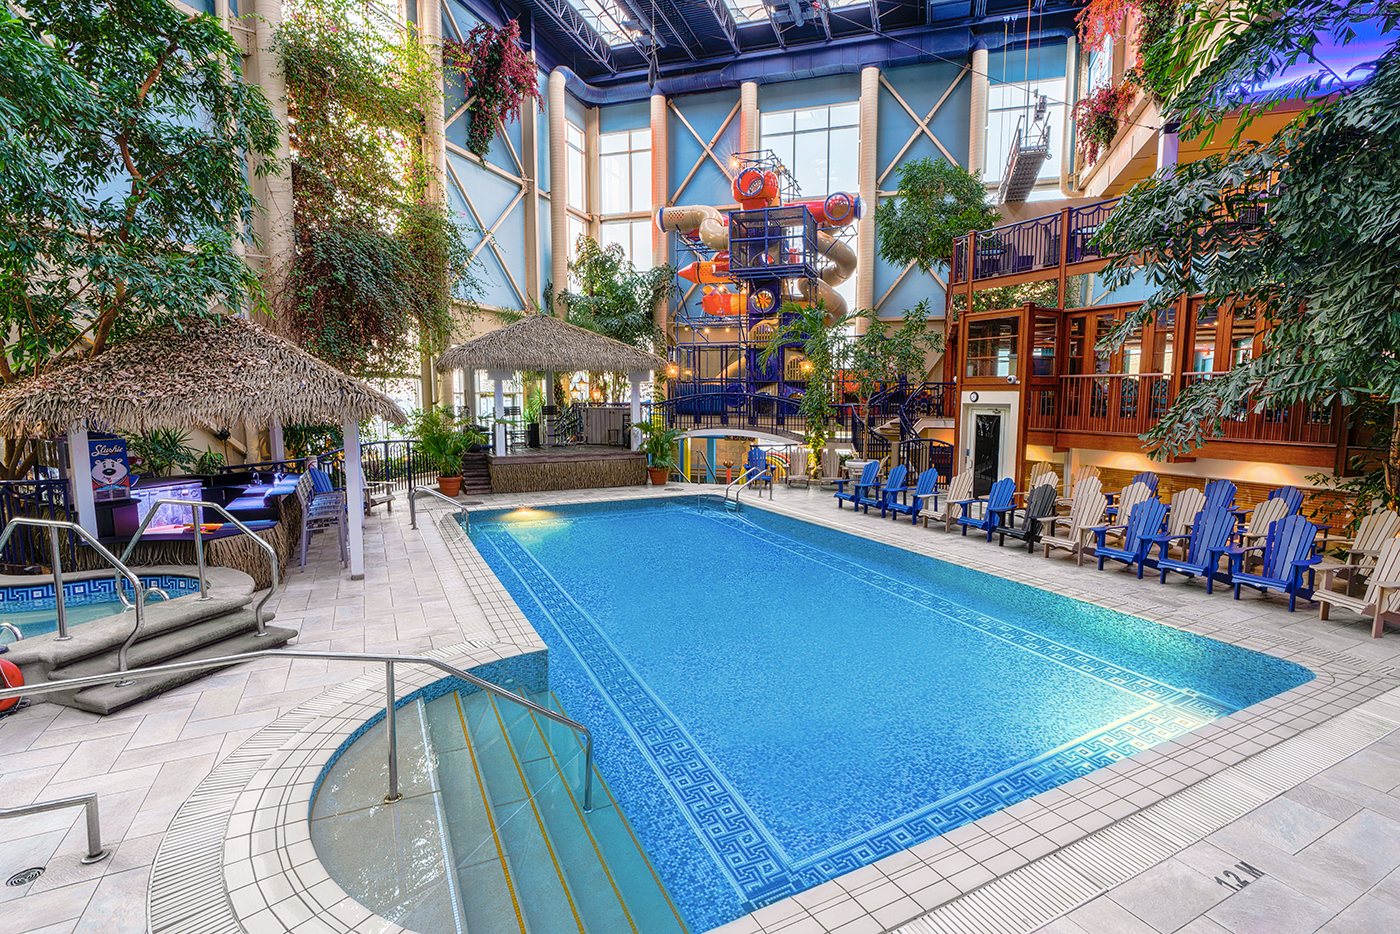 l-hotel-quebec-by-jaro-hotels-of-quebec-city